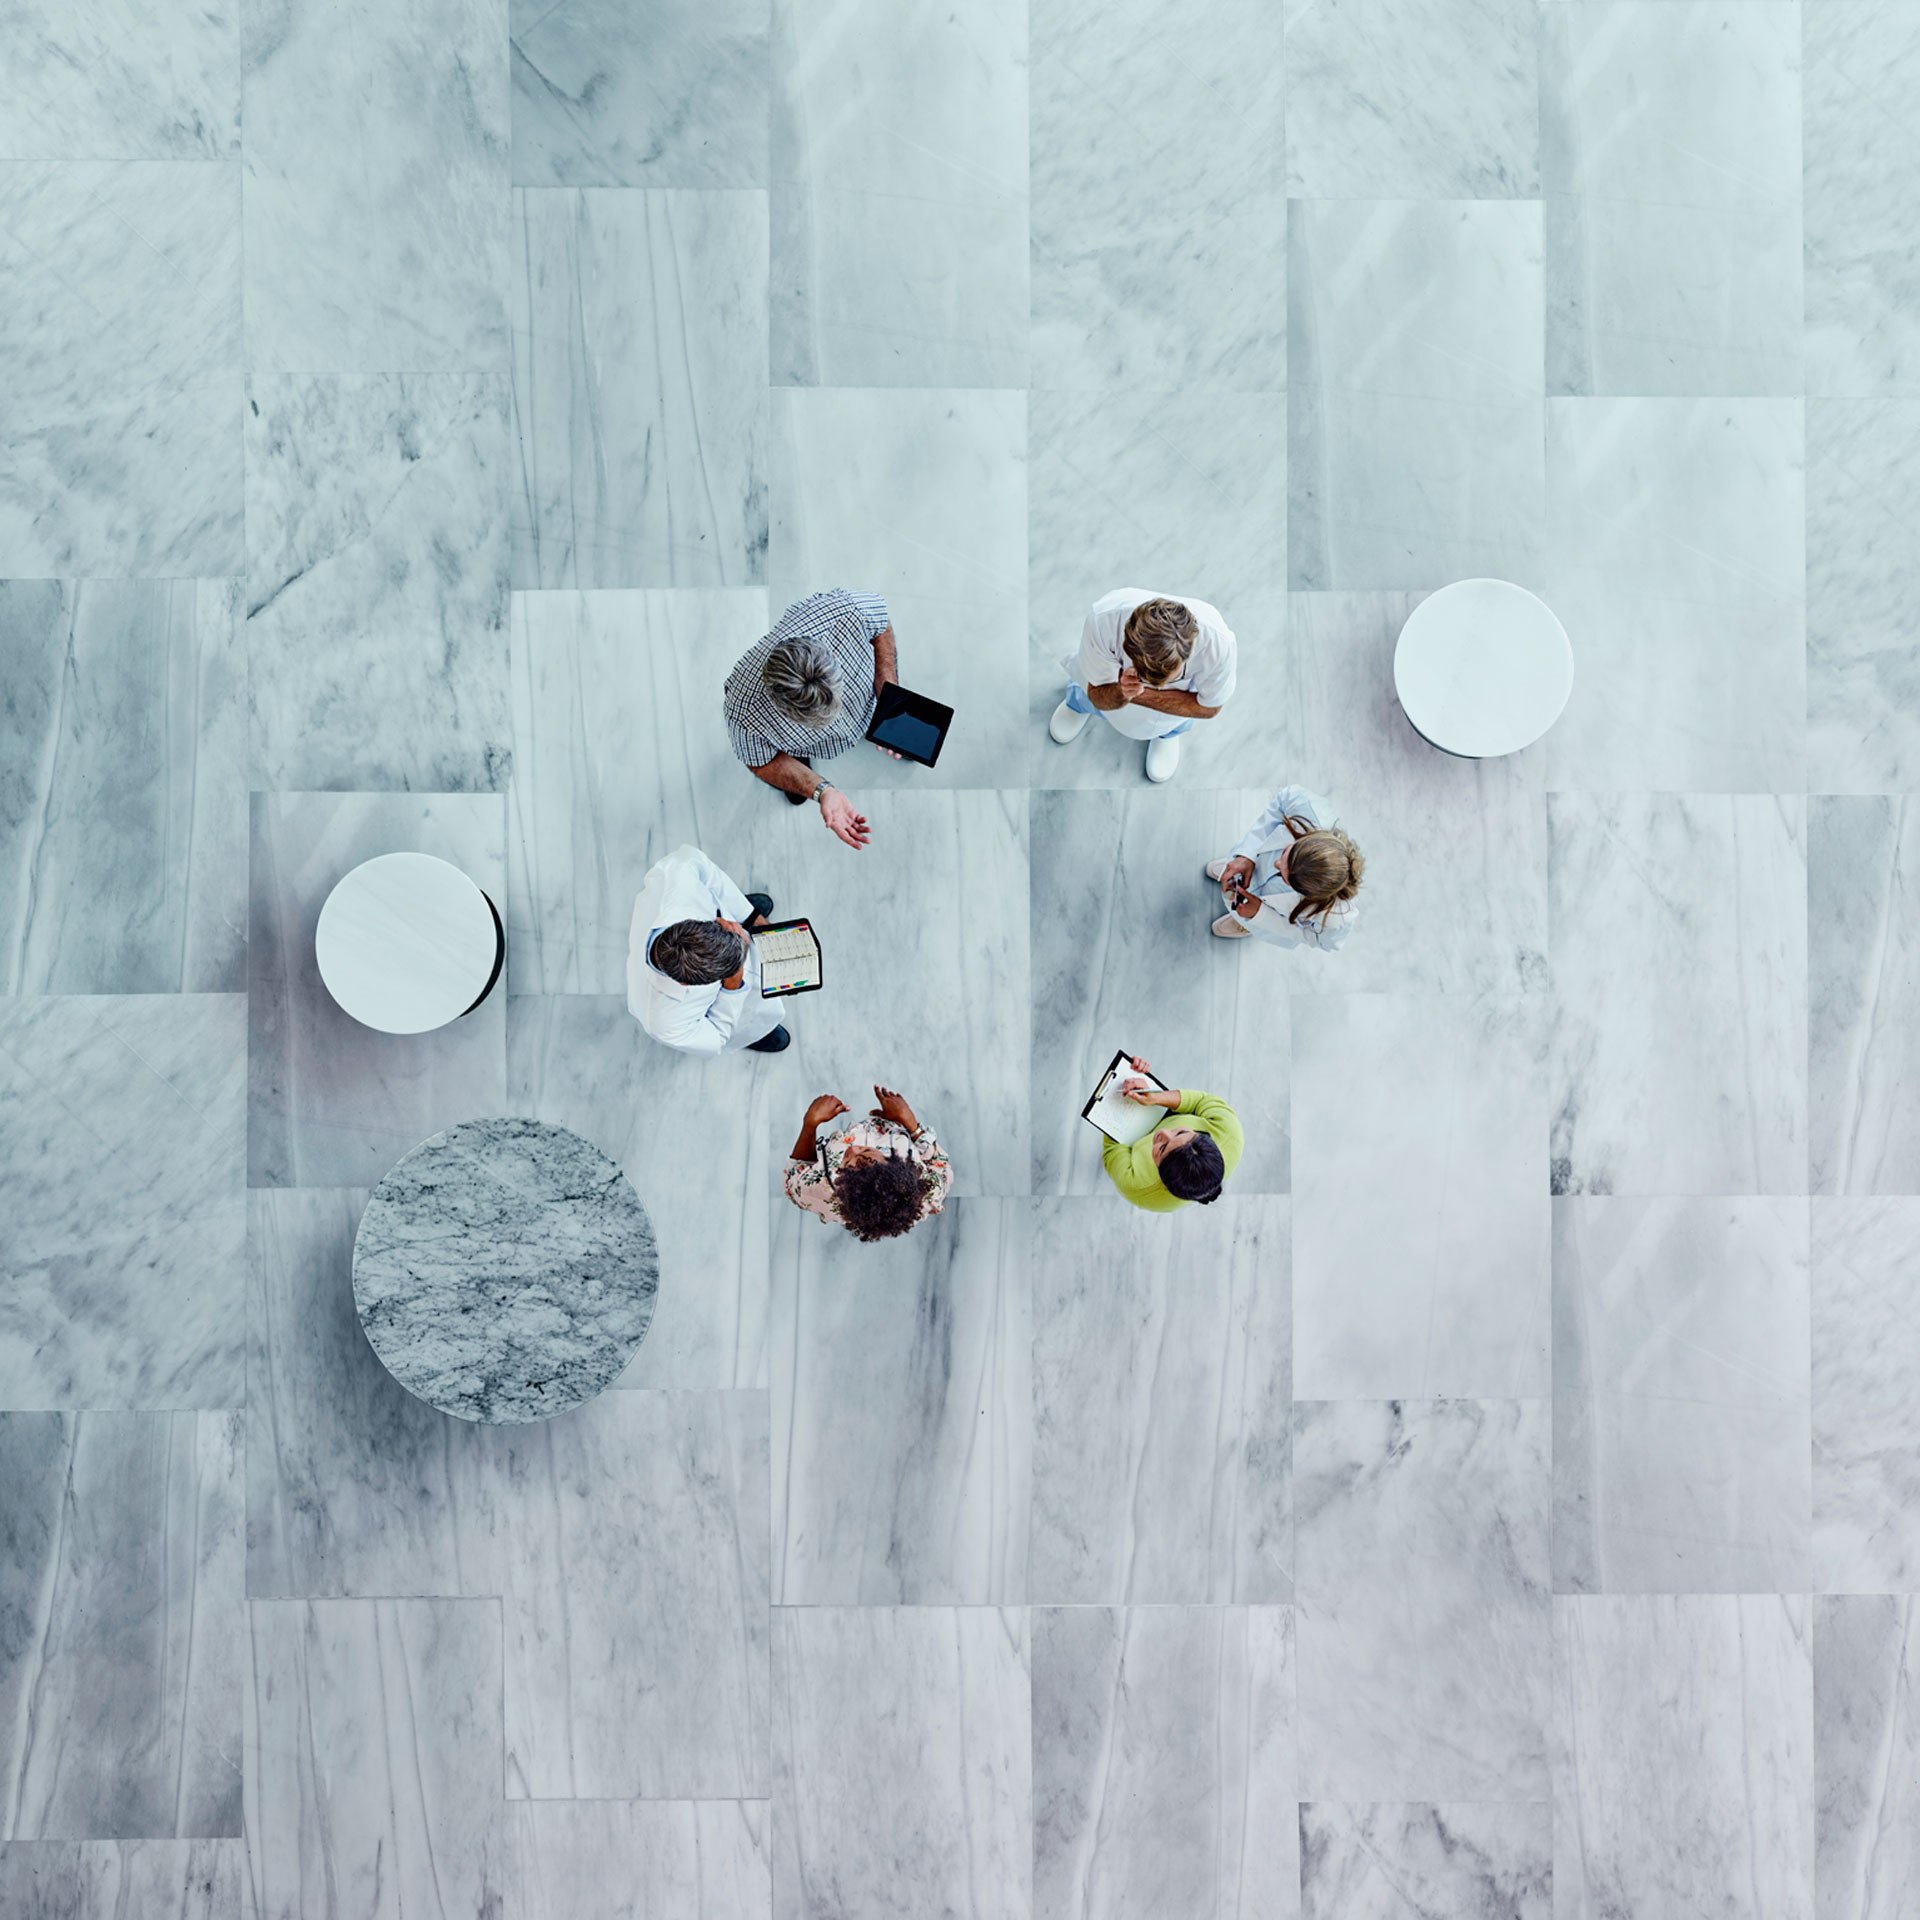 A top down view of people in a circle talking